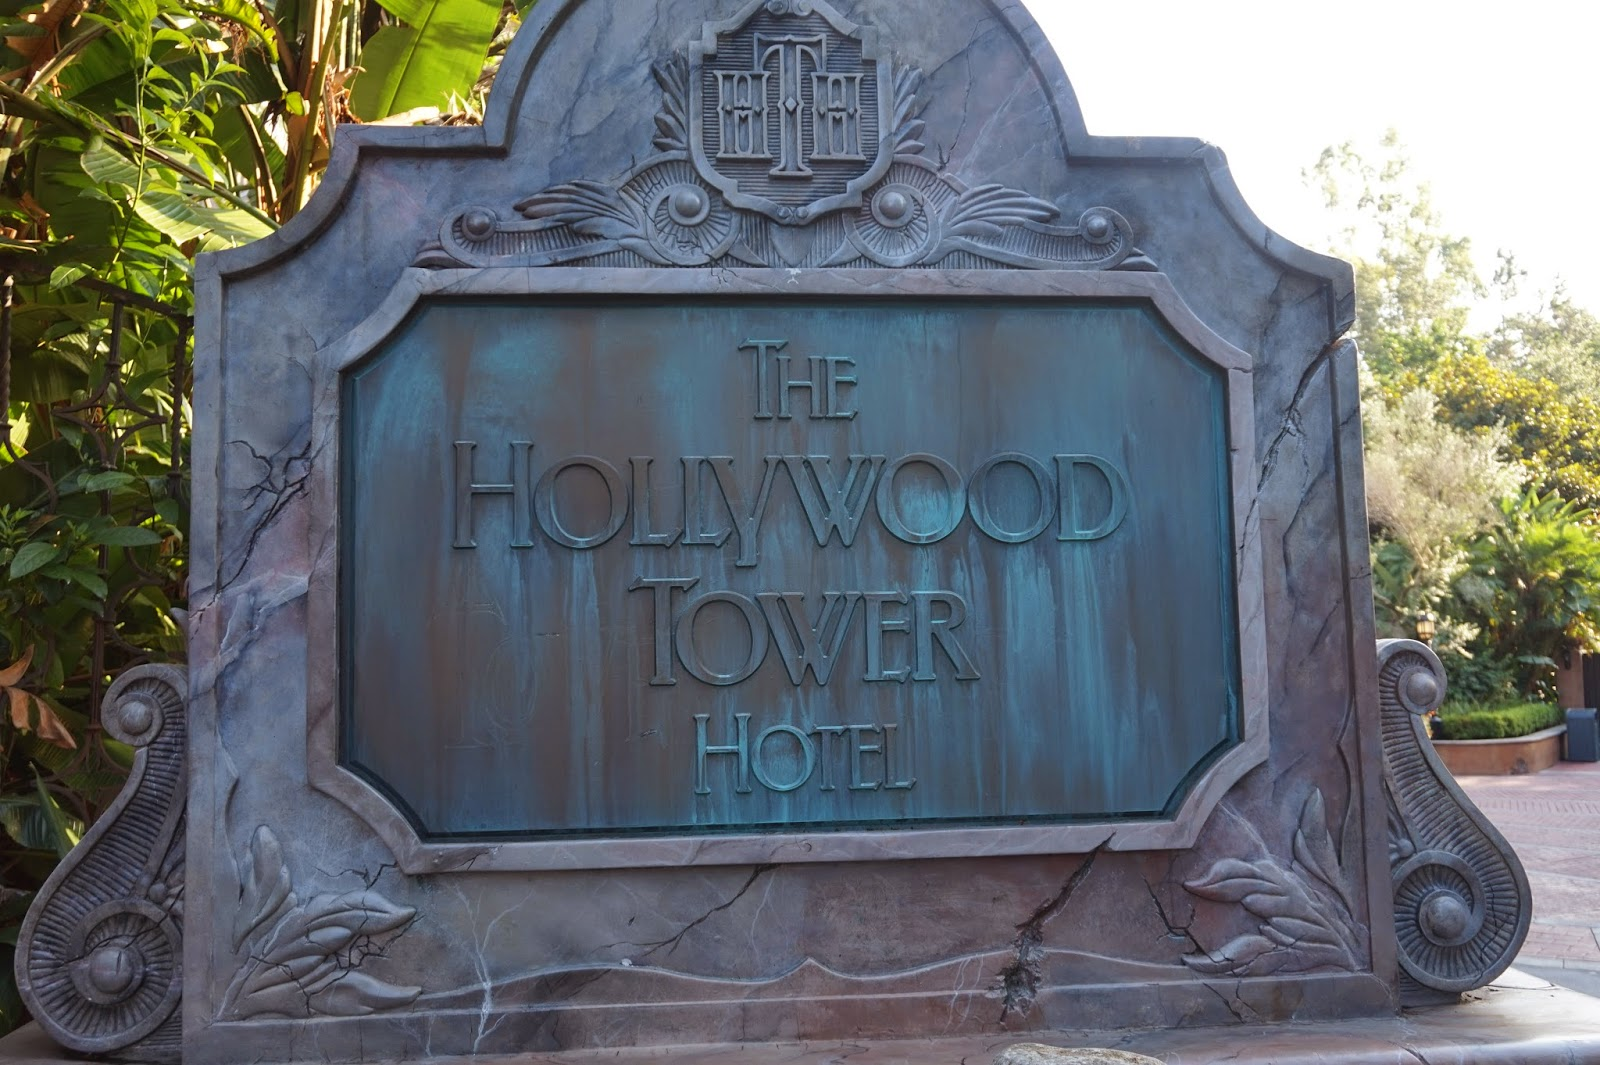 Walt Disney World 4 Parks 1 Day Challenge: Part I (Hollywood Studios) | CosmosMariners.com